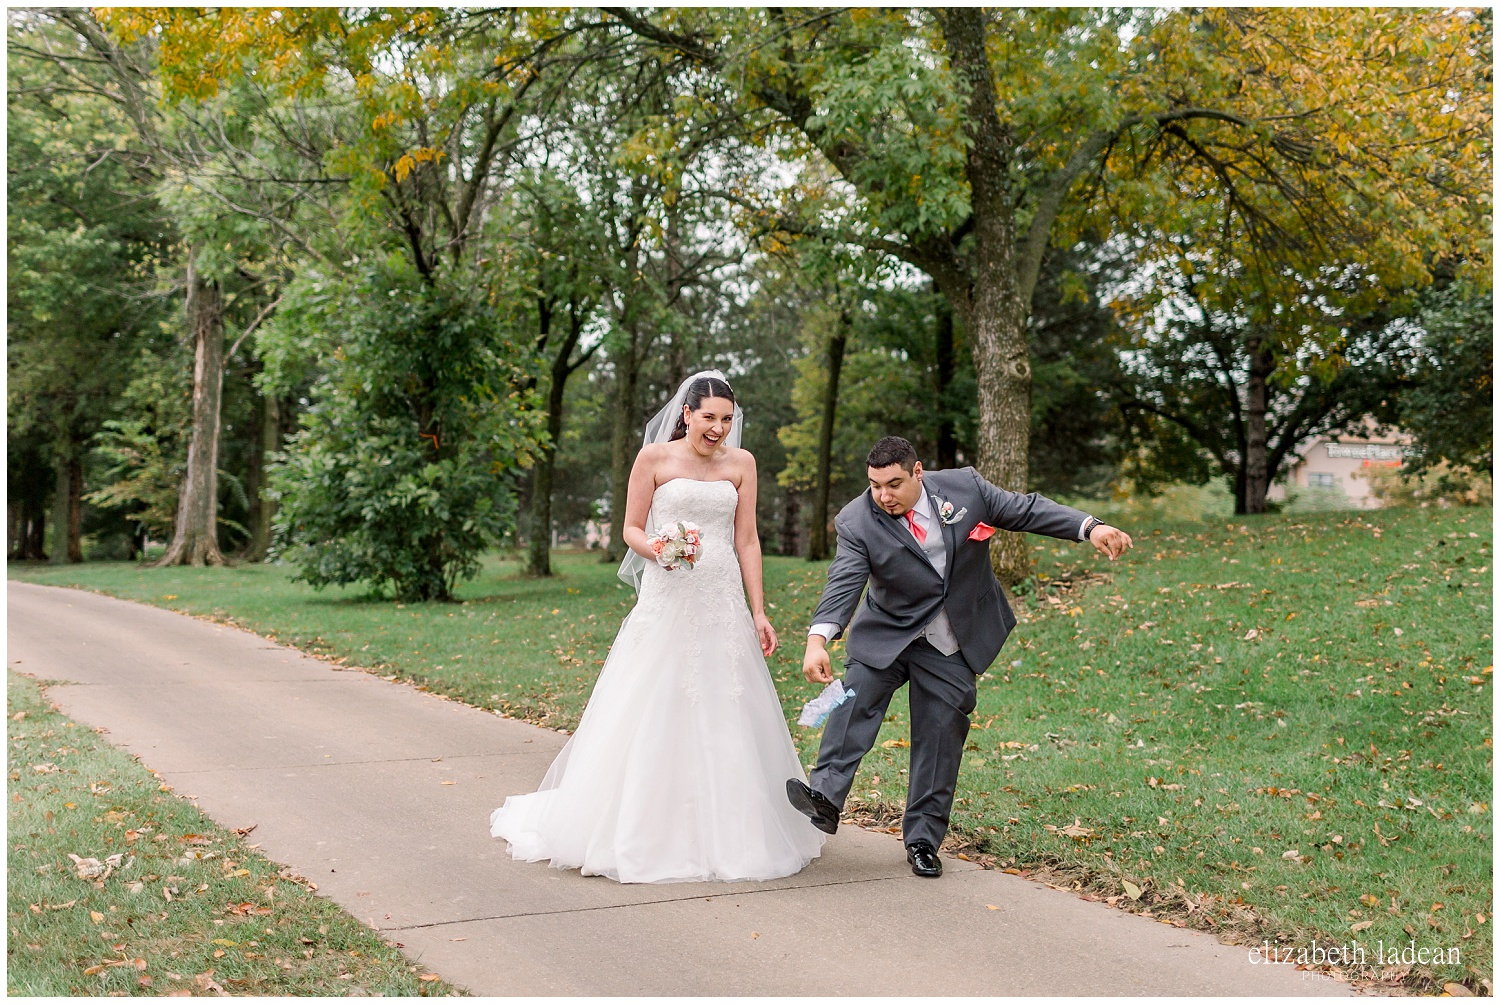 -behind-the-scenes-of-a-wedding-photographer-2018-elizabeth-ladean-photography-photo_3573.jpg